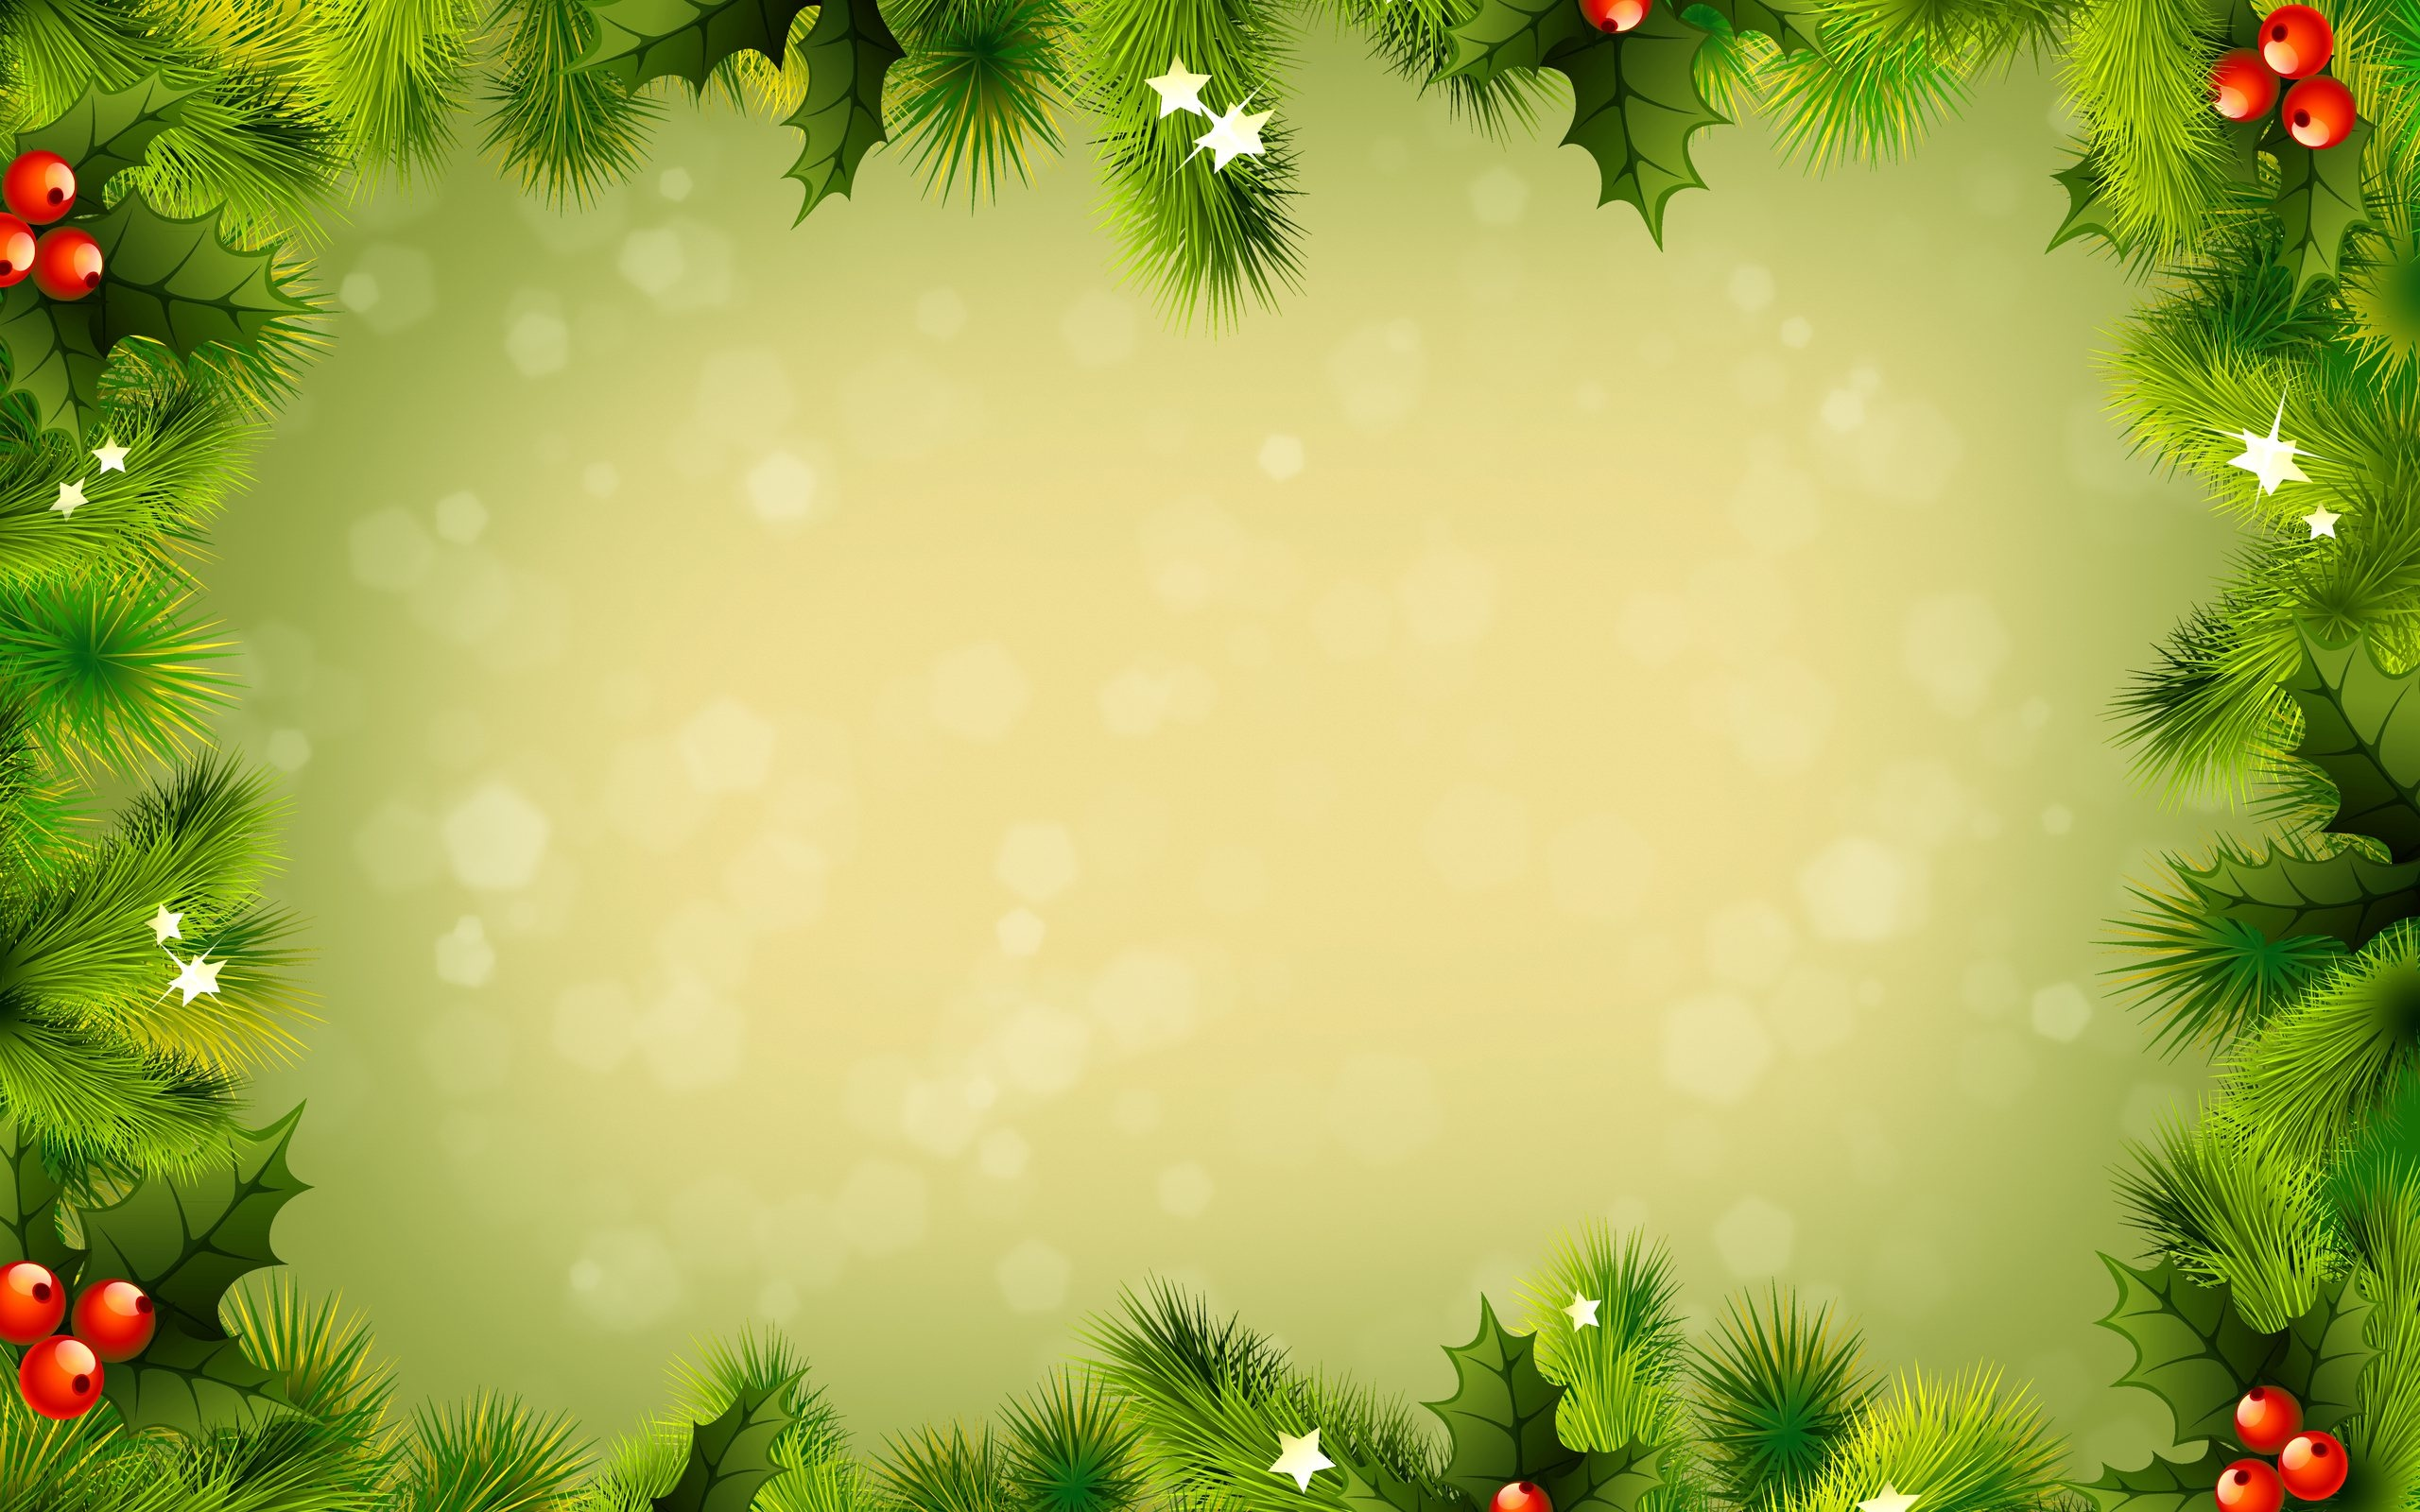 Christmas Background Wallpapers HD Backgrounds Download   Baltana 2560x1600